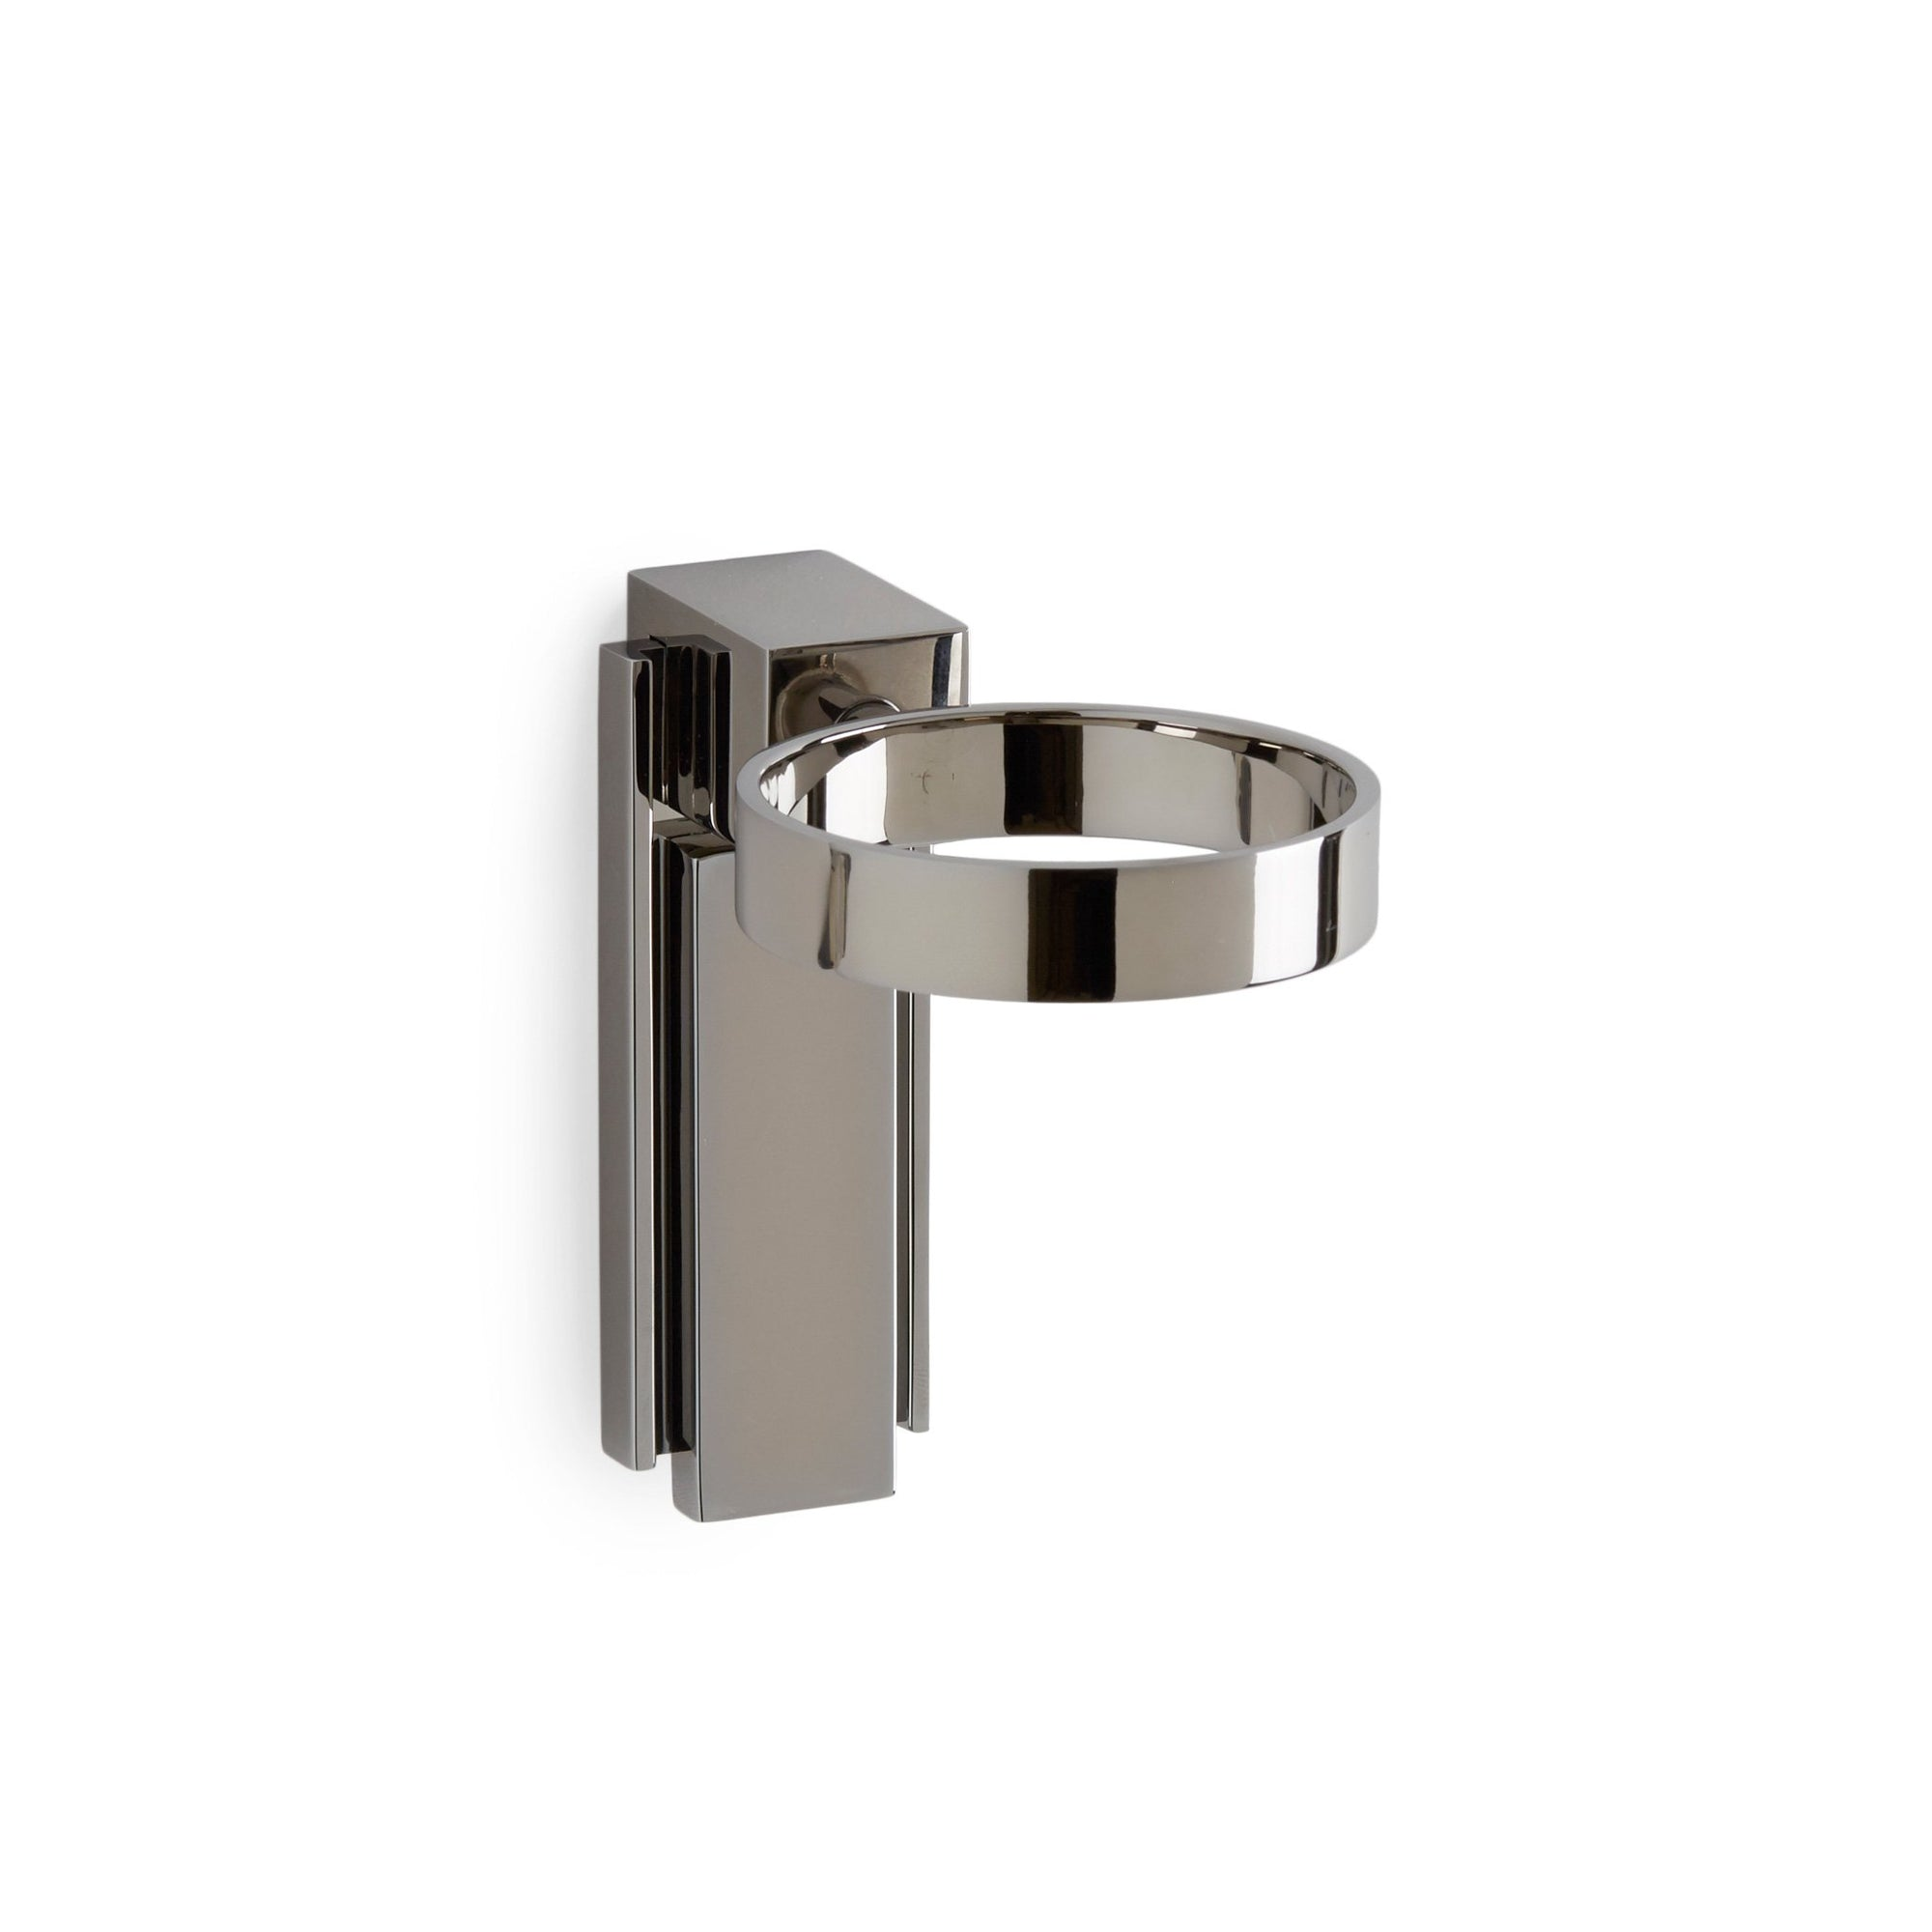 3458-MLIN-CP Sherle Wagner International Apollo Tumbler Holder with Metal insert in Polished Chrome metal finish